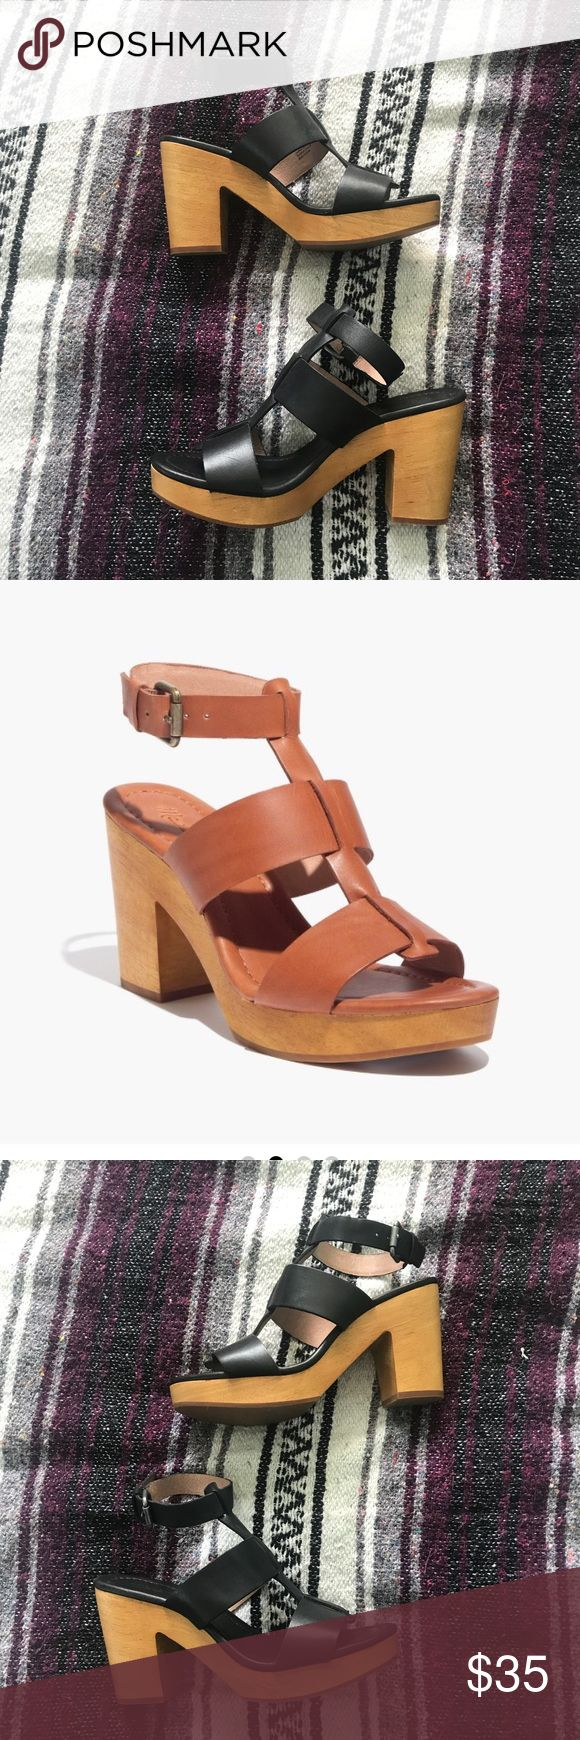 """Madewell Irving Sandal These are a pair of Madewell's Irving Sandal in black leather with a wooden heel. They are in excellent condition and have never been worn. They have a 3 3/4"""" heel and can be easily transitioned from summer to fall! Madewell Shoes Sandals"""